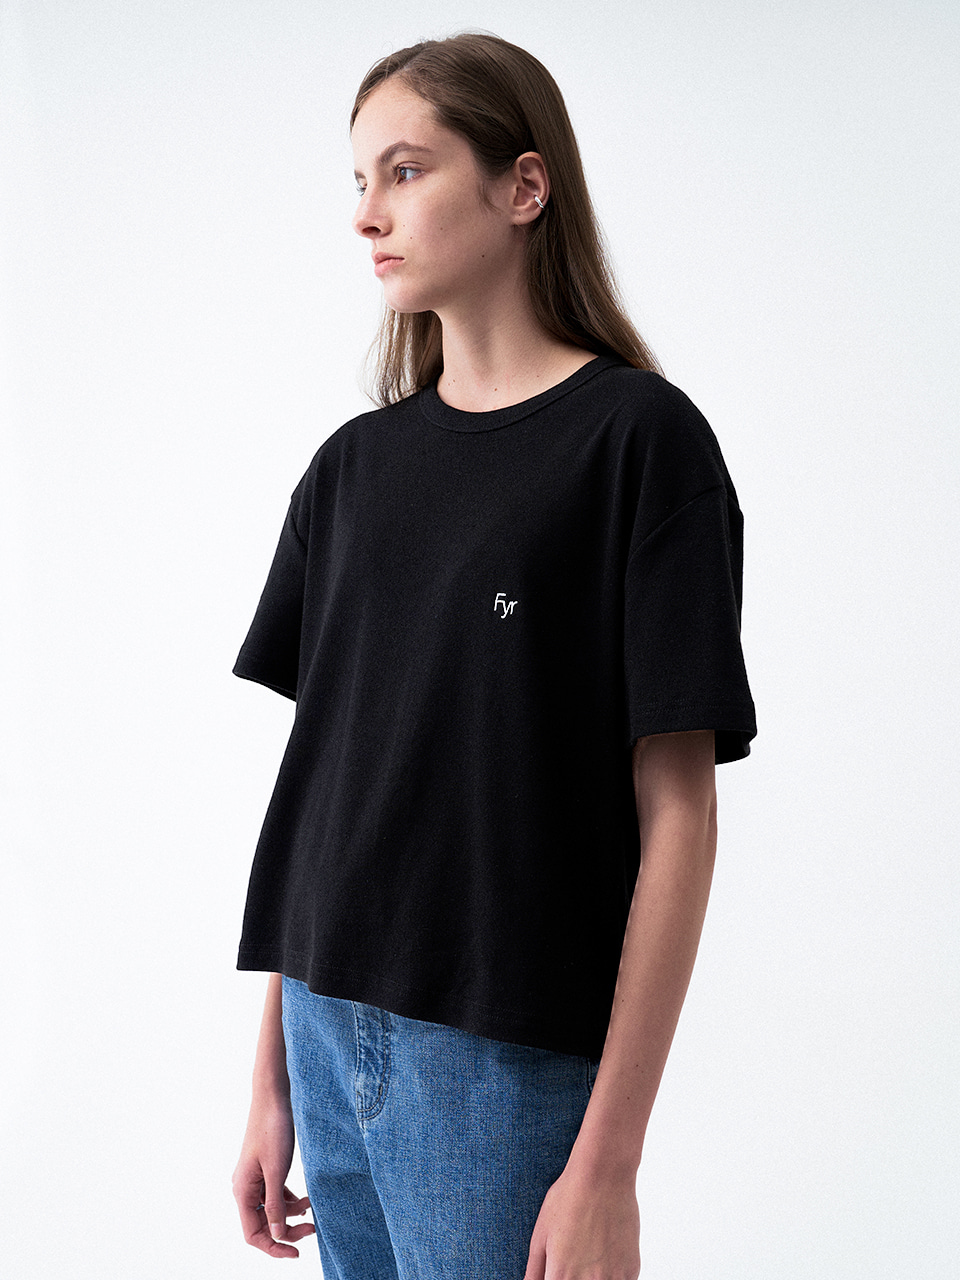 Foyer Signiture Tee Black